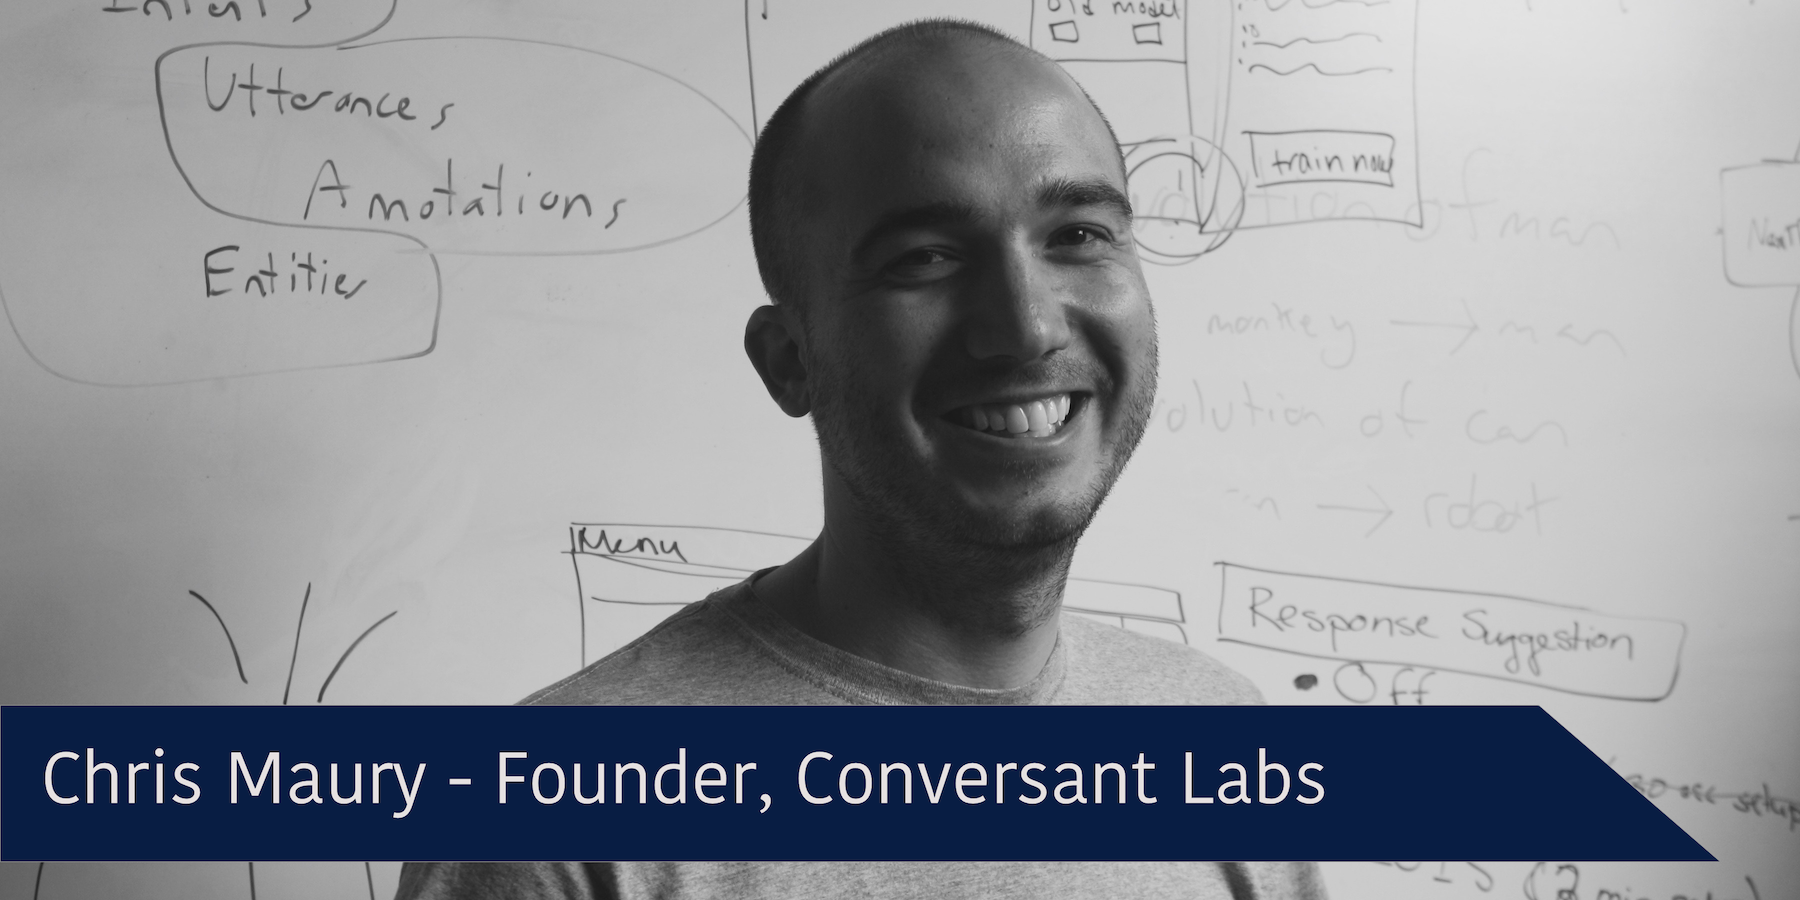 Interview with Chris Maury, founder and CEO of the startup Conversant Labs